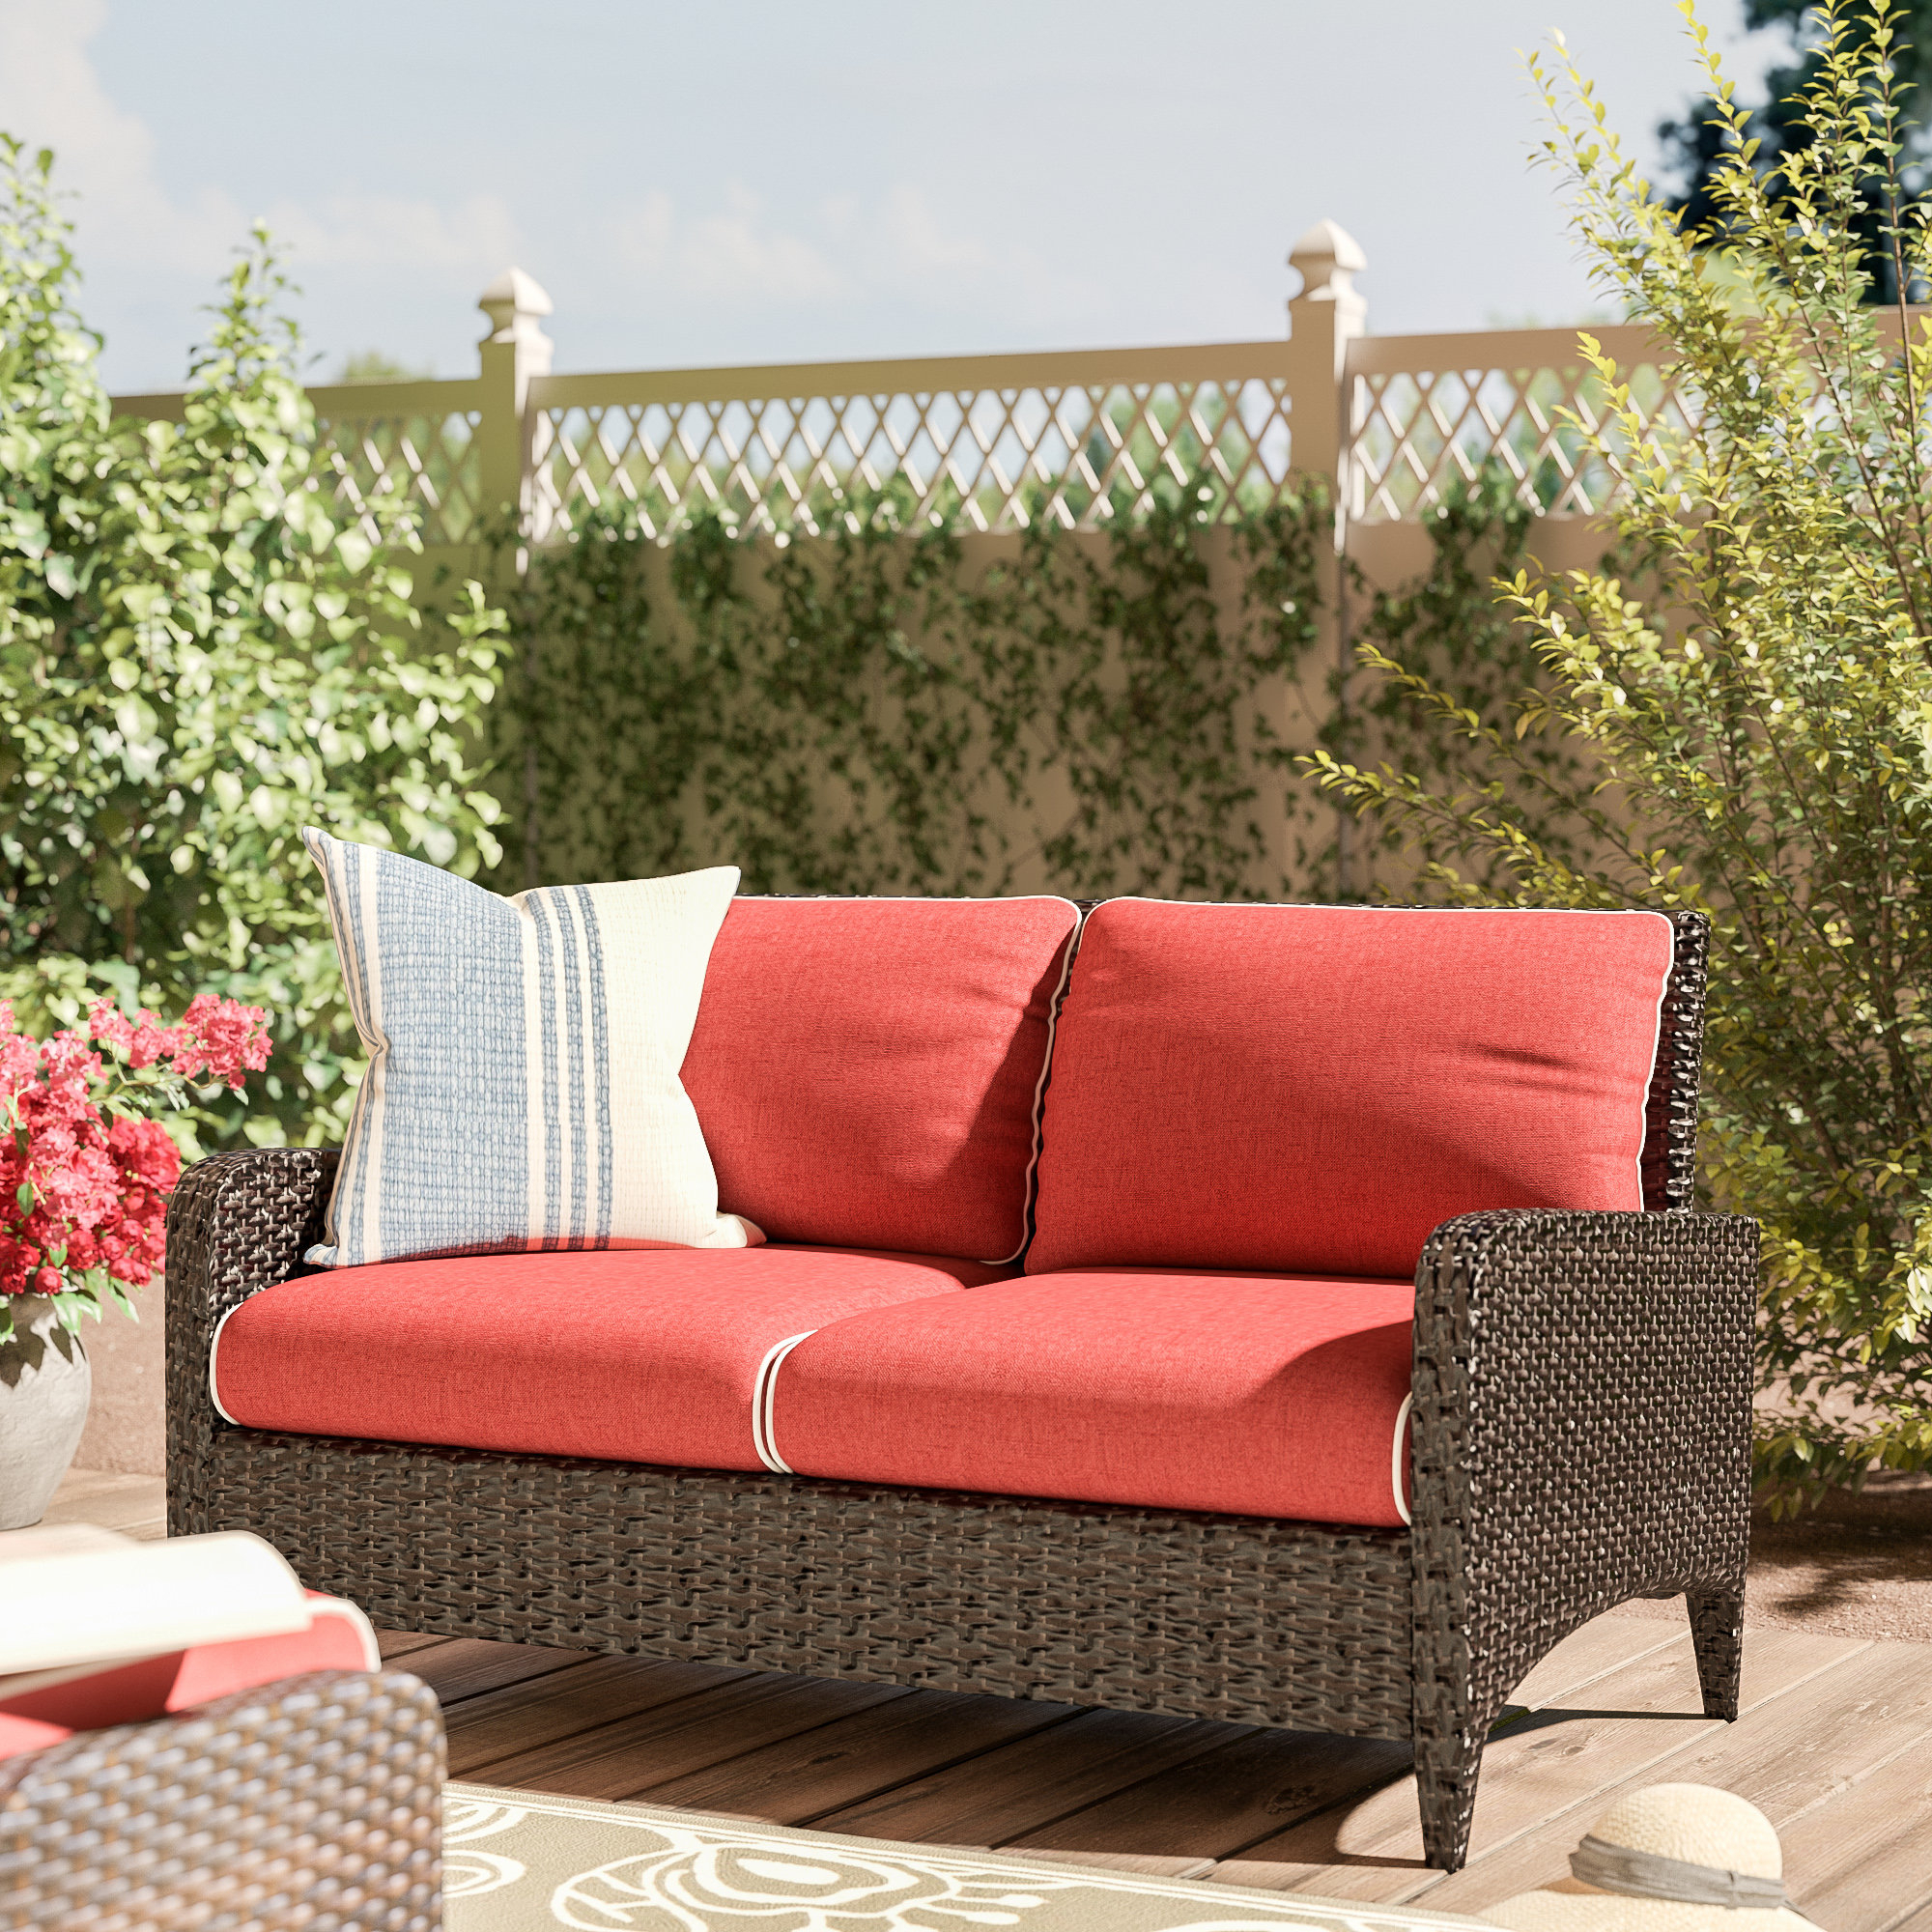 Well Known World Menagerie Mosca Patio Loveseat With Cushions & Reviews With Regard To Camak Patio Loveseats With Cushions (View 8 of 20)